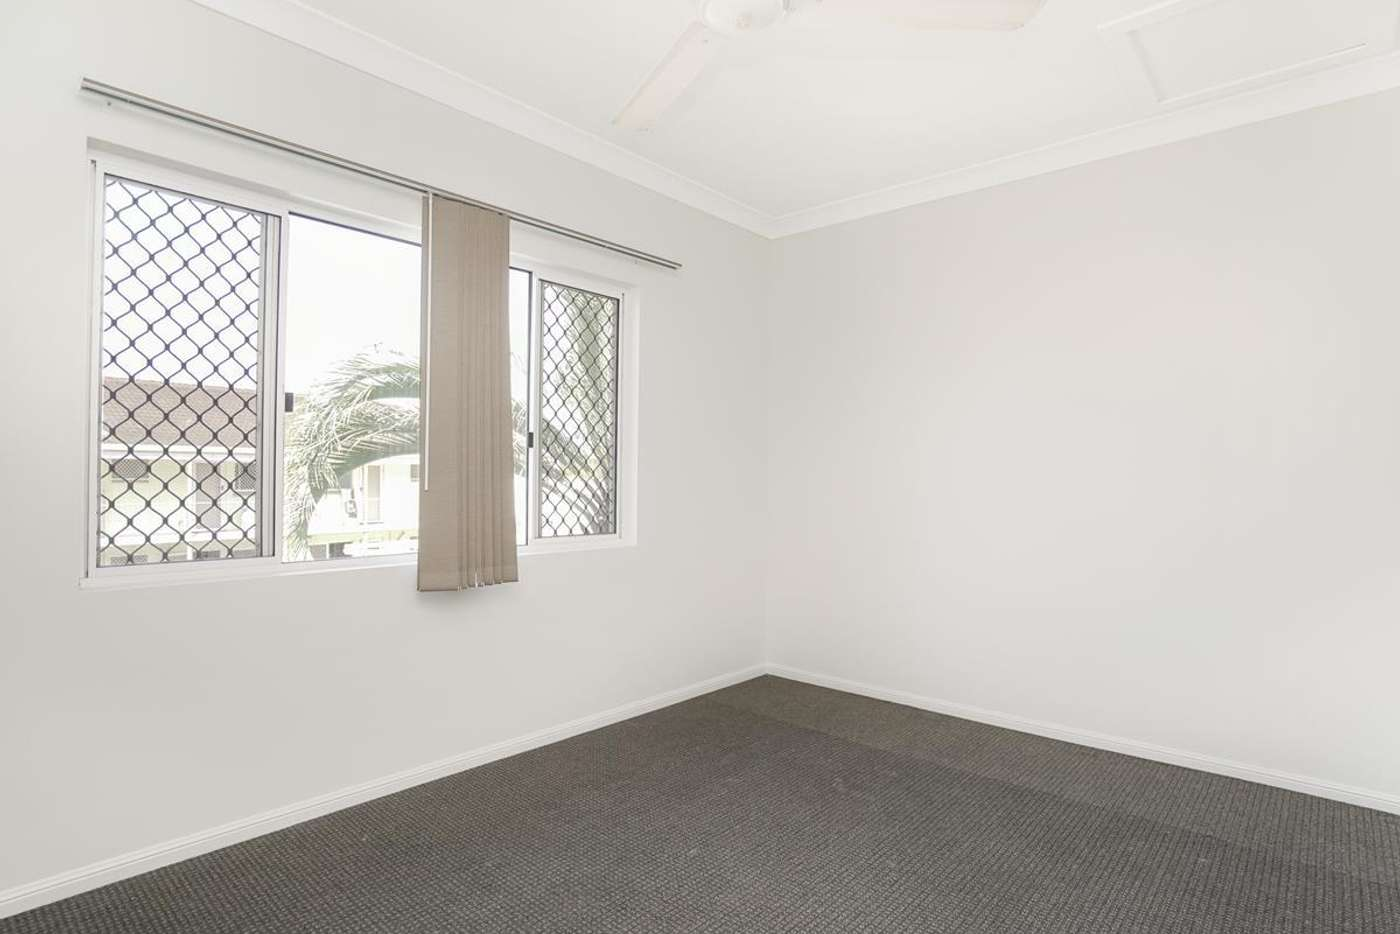 Sixth view of Homely townhouse listing, 5/1 Sondrio Street, Woree QLD 4868